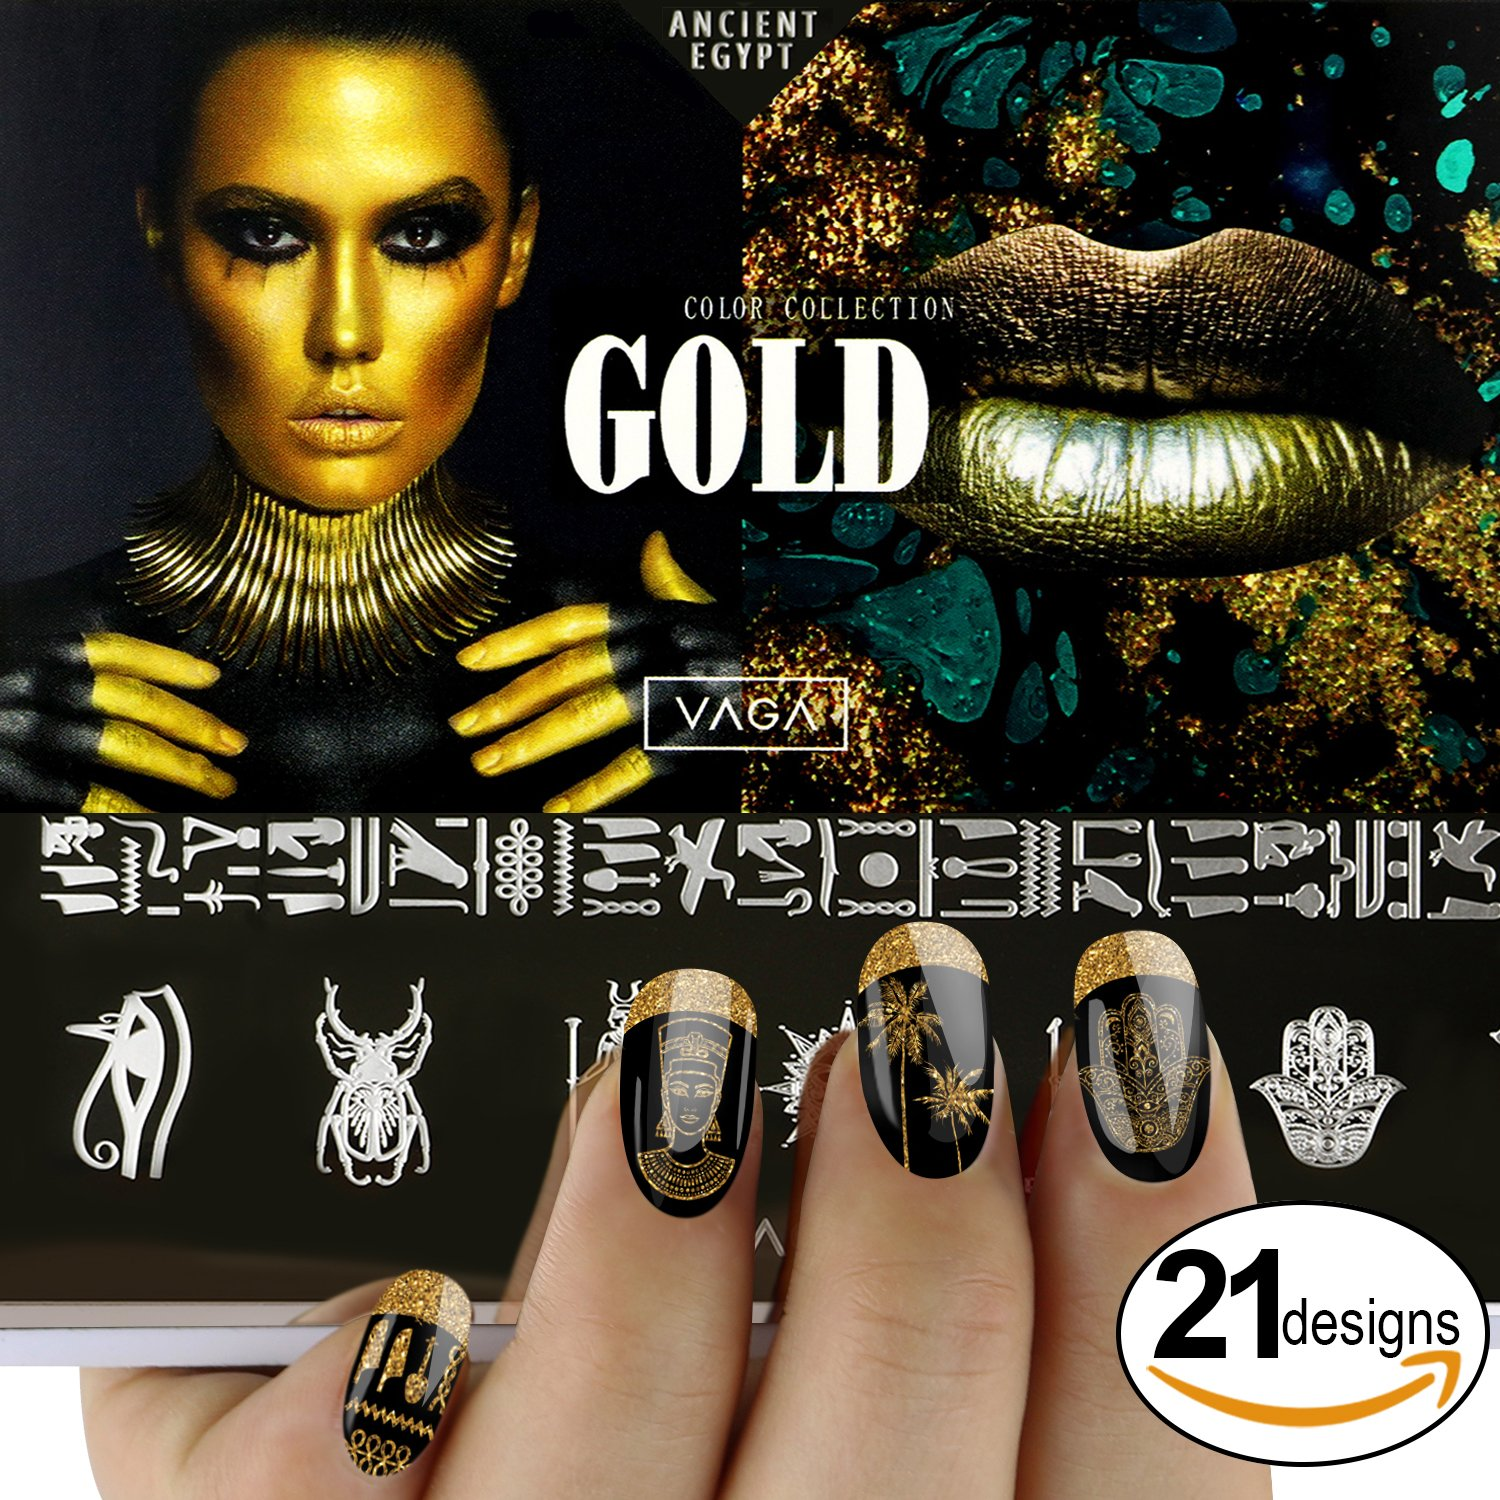 VAGA Ancient Egypt Motives Metal Nail Art Stamping Designs Plate with Images and Pictures for Manicure Stamps Transfers